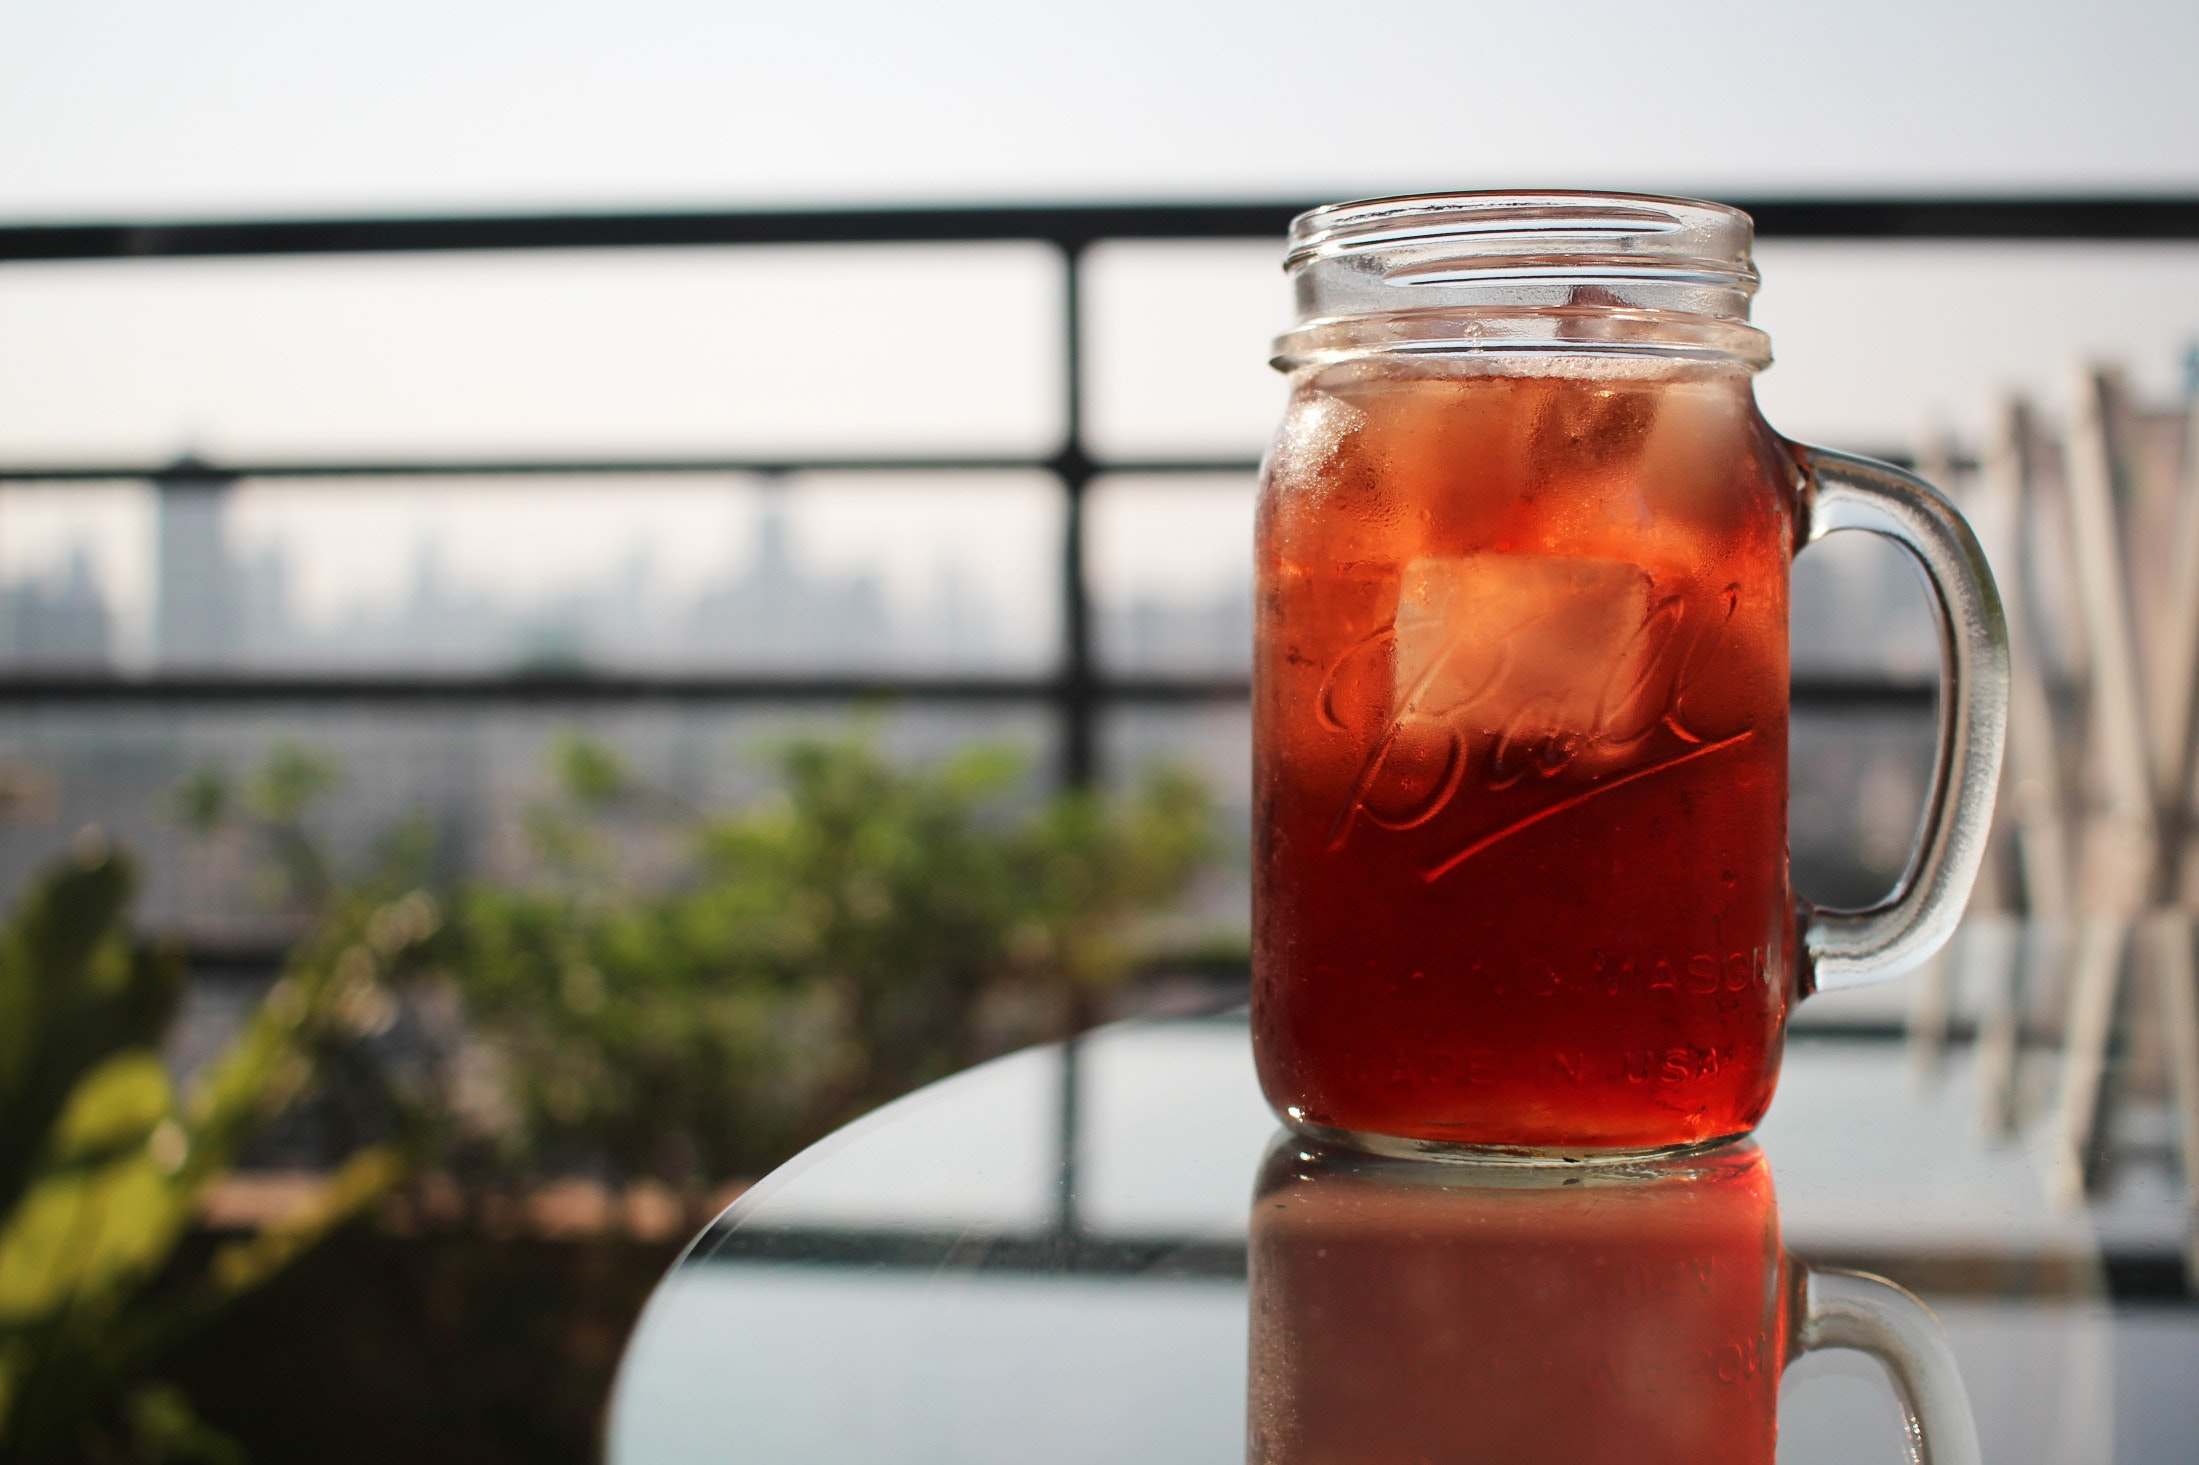 drink-glass-ball-iced-tea-606256